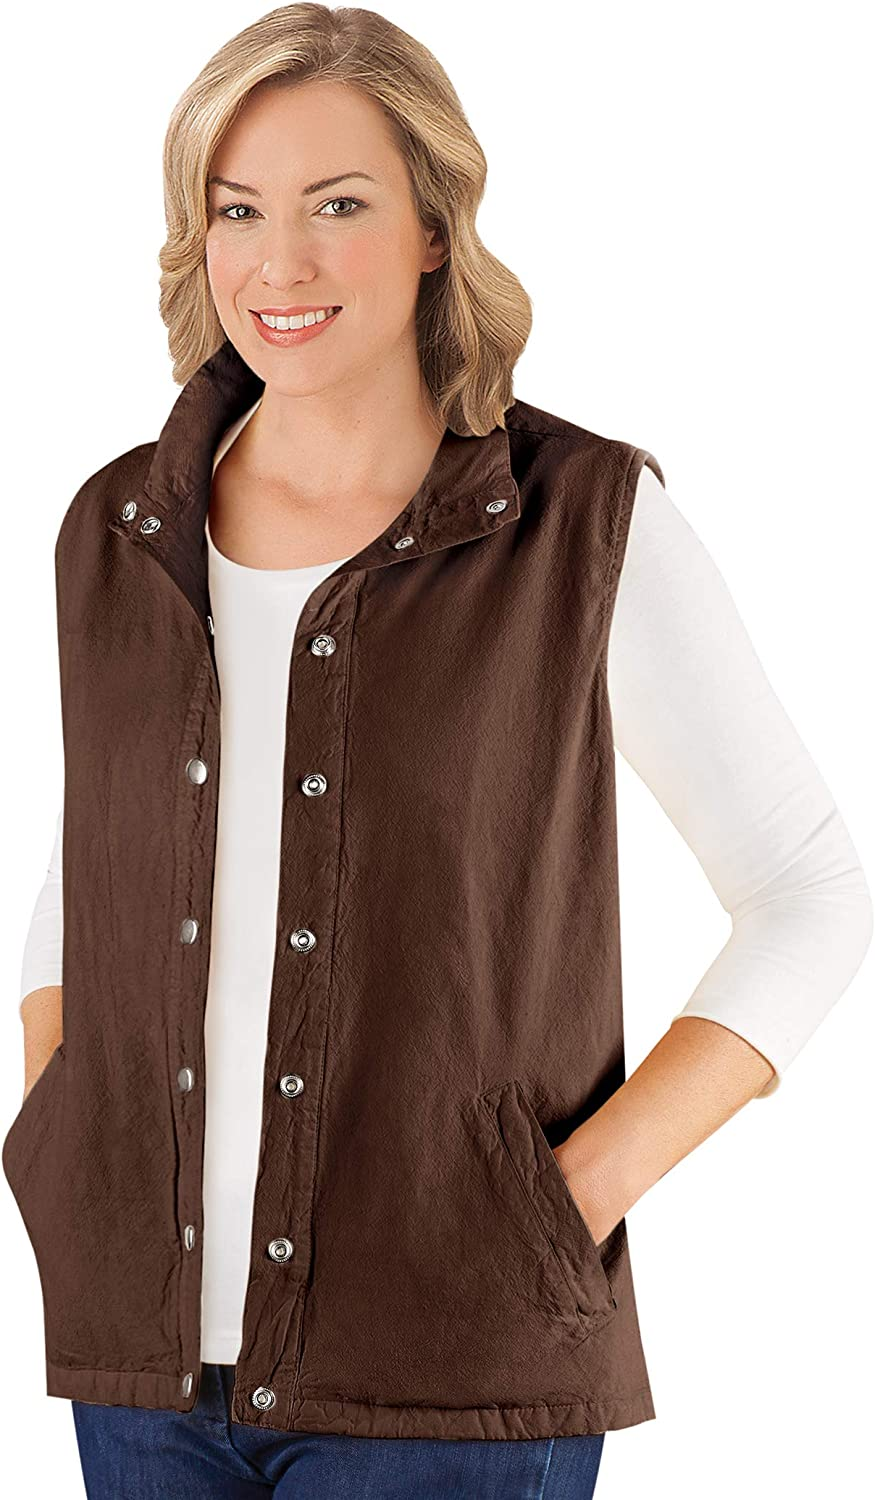 Snap Front and Cinch Back Sleeveless Vest with Front Slant Pockets - Flattering Layering Piece for Outfit